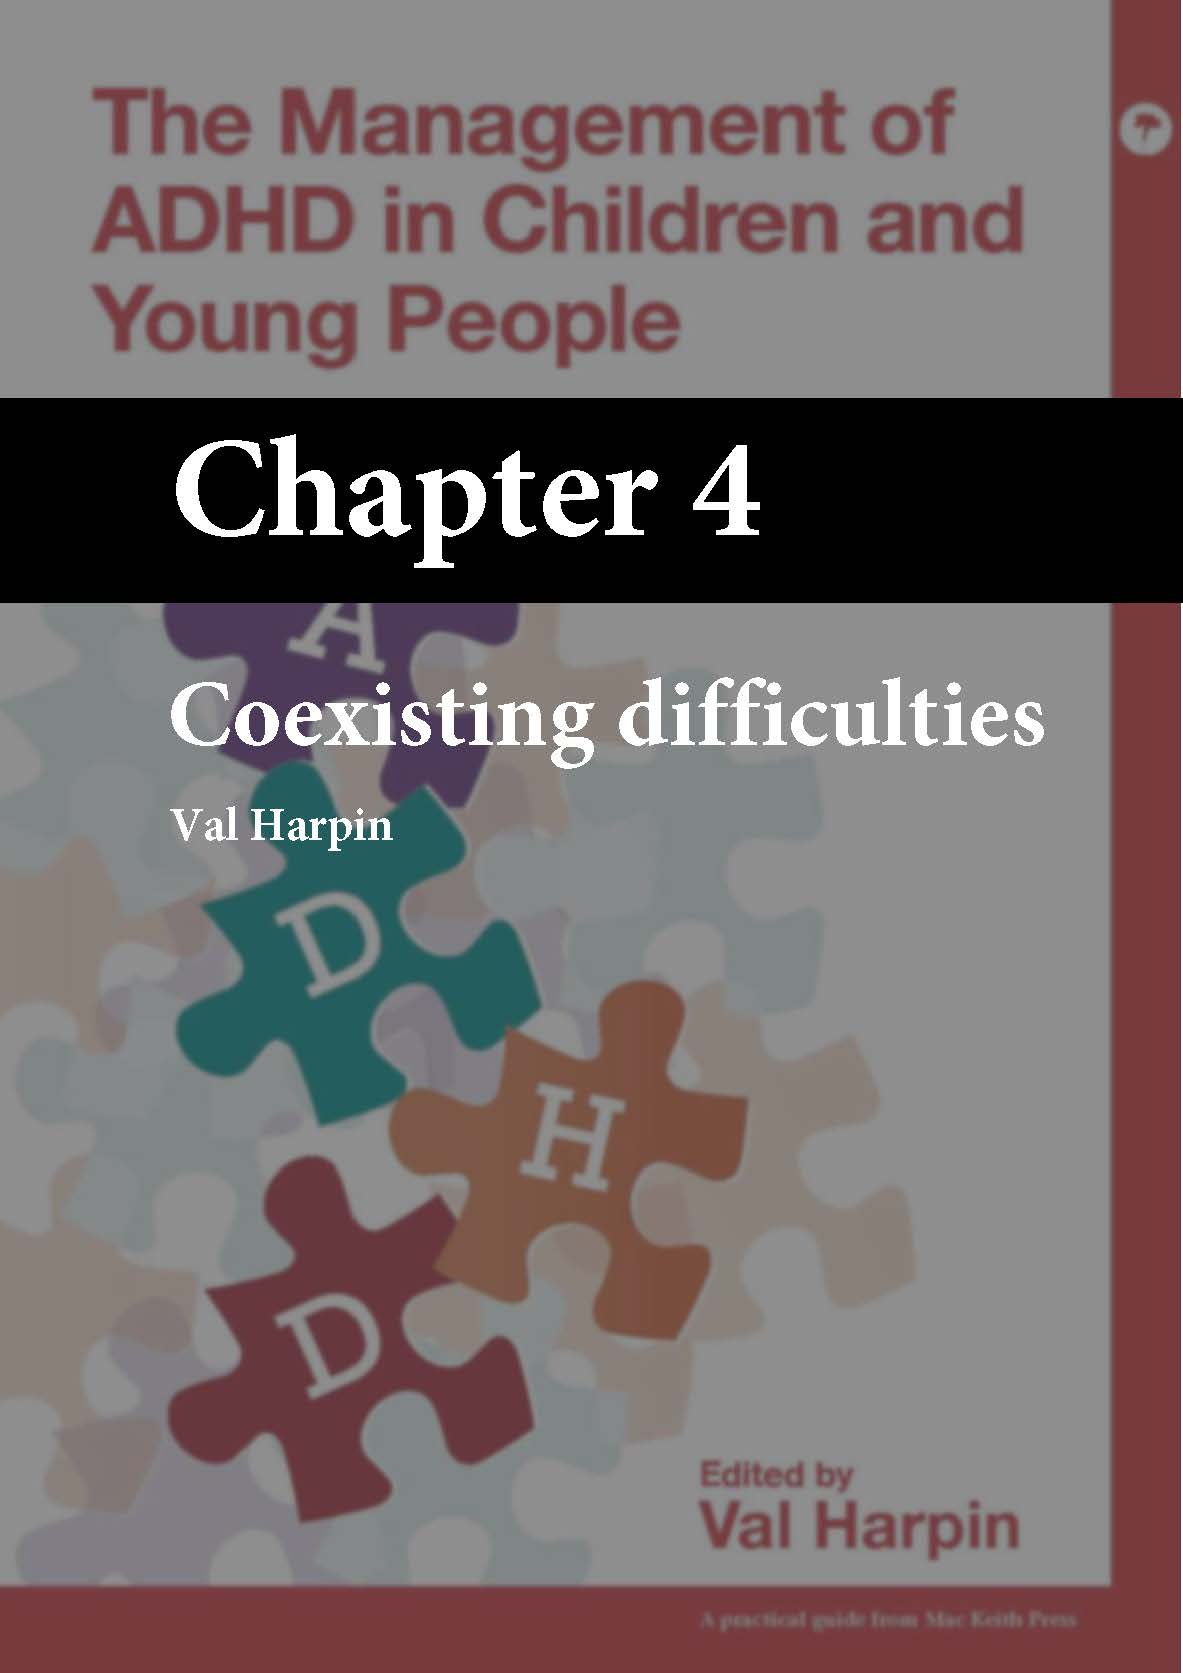 The Management of ADHD in Children and Young People, Harpin, Chapter 4 cover